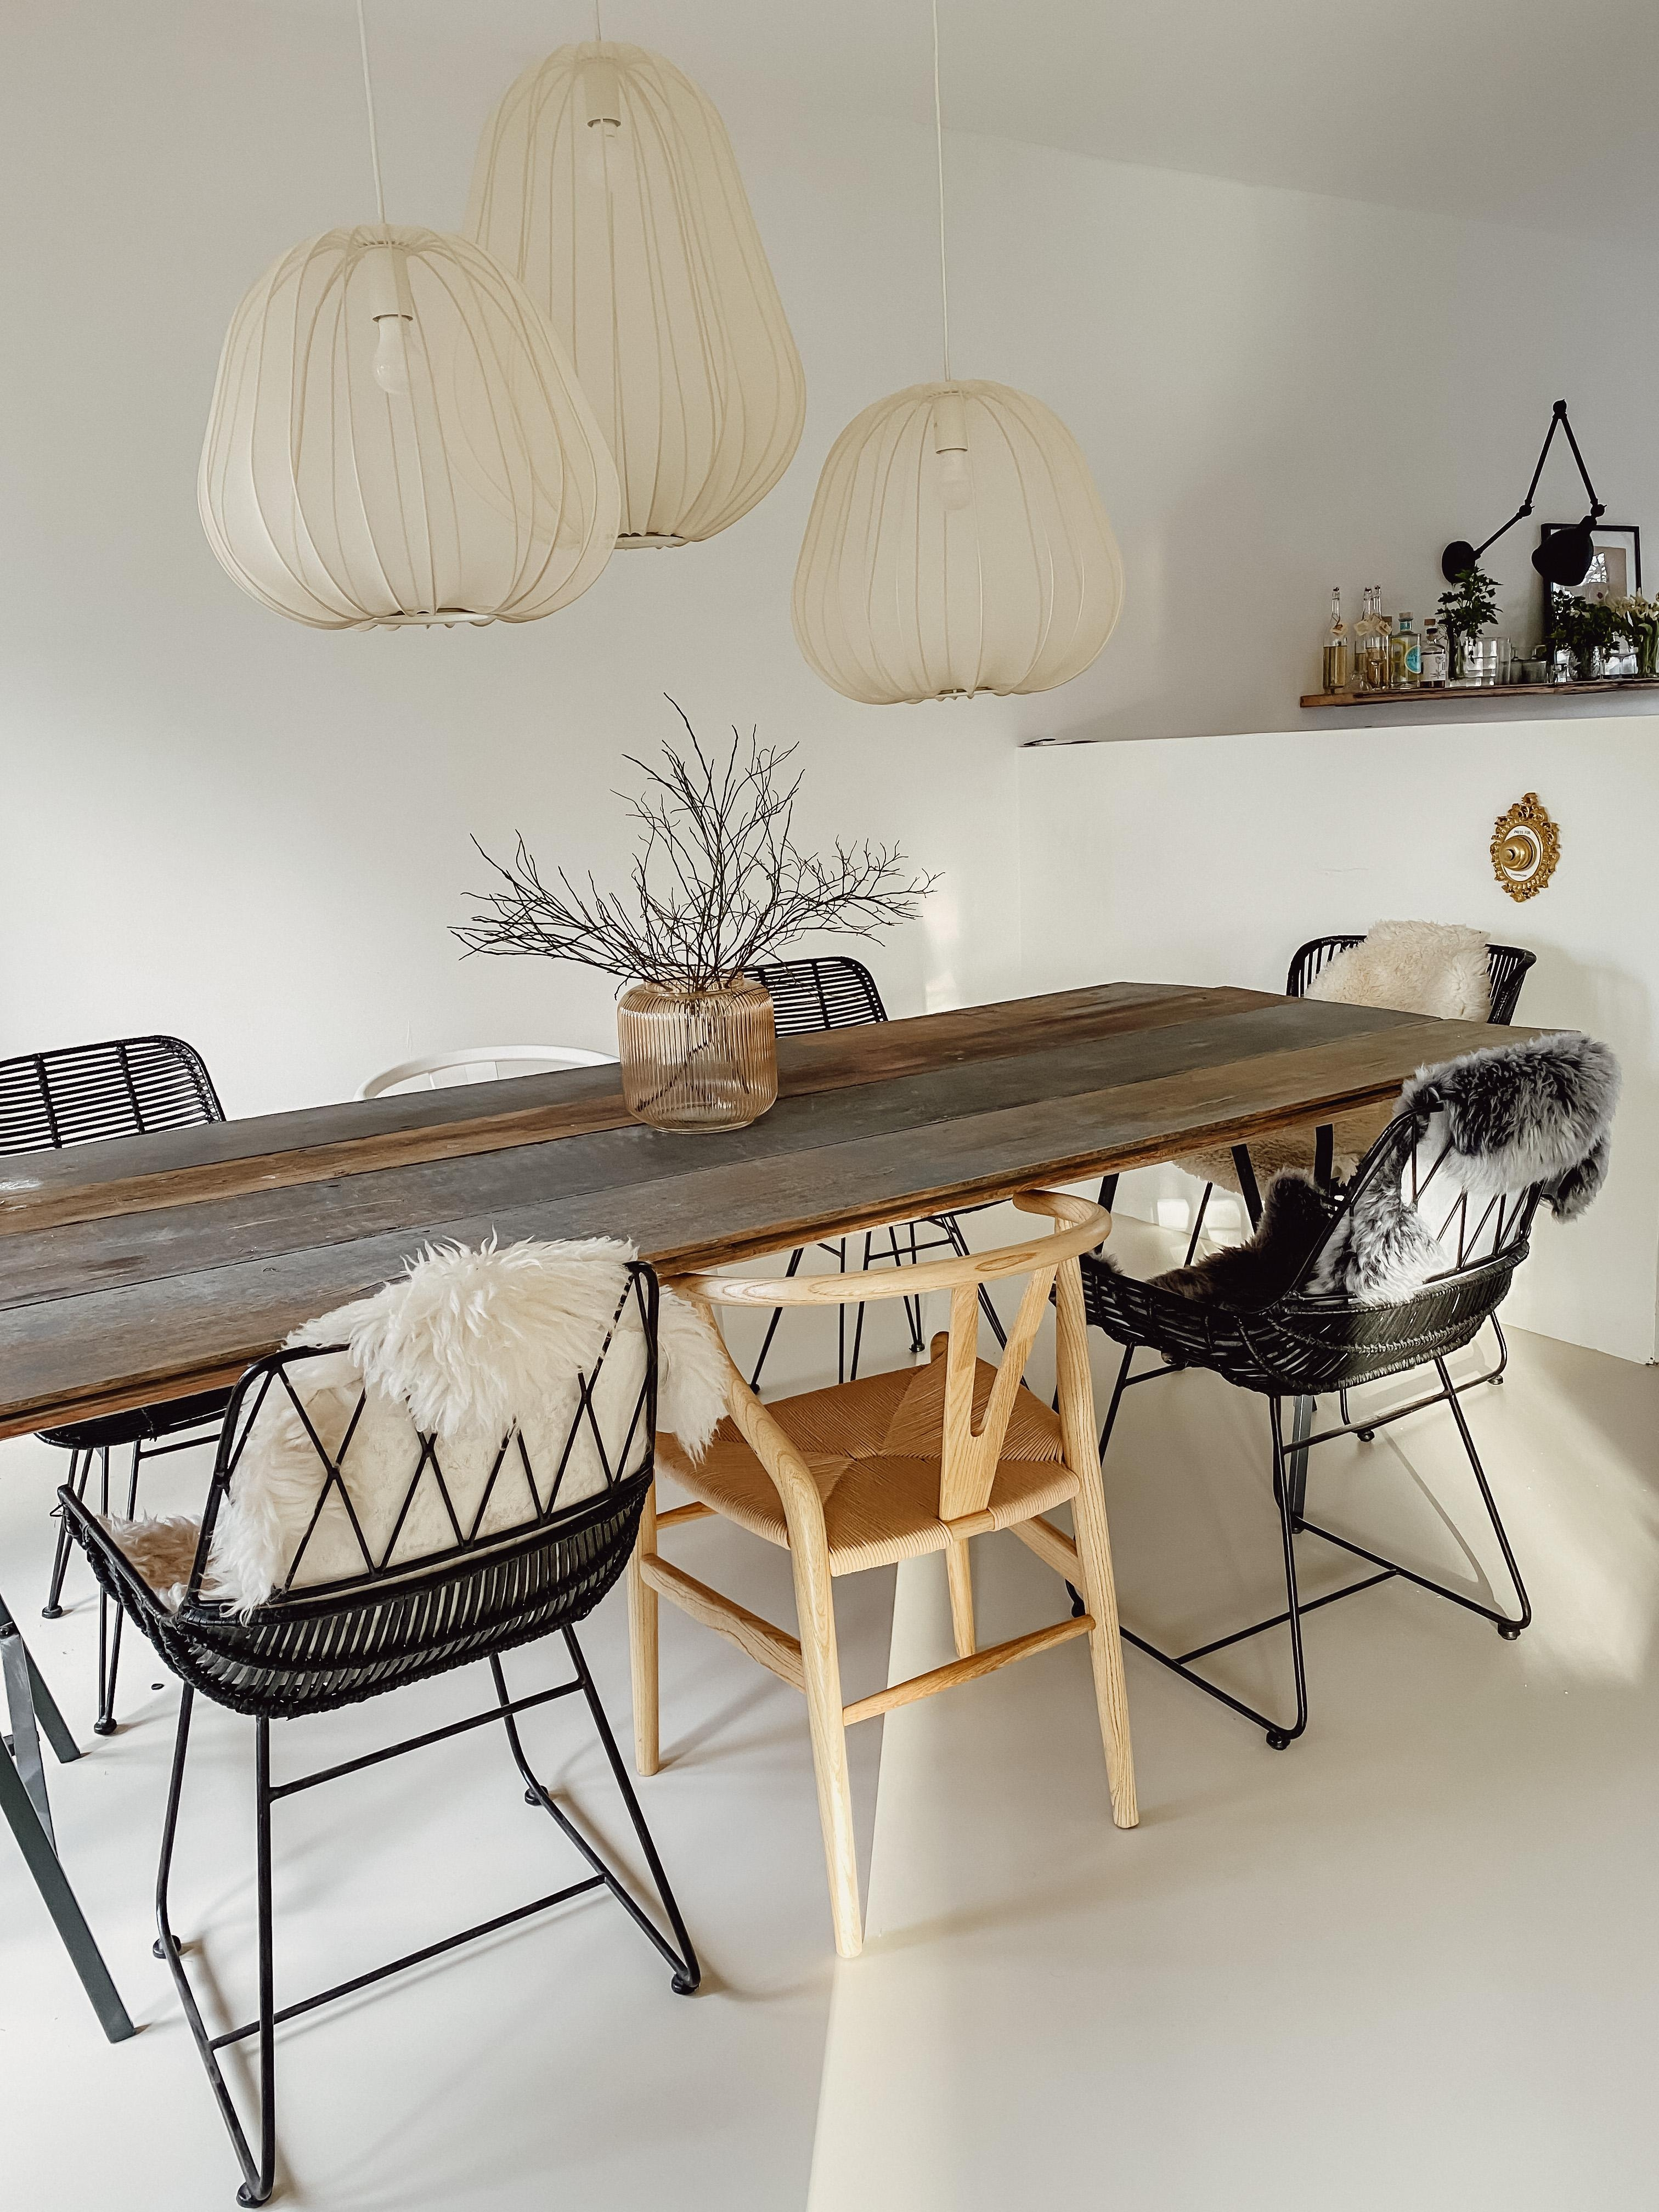 #esszimmer #esstisch #chairs #newlamps #bolia #boliacom #lightning #diningroom #diningtable #hamburg